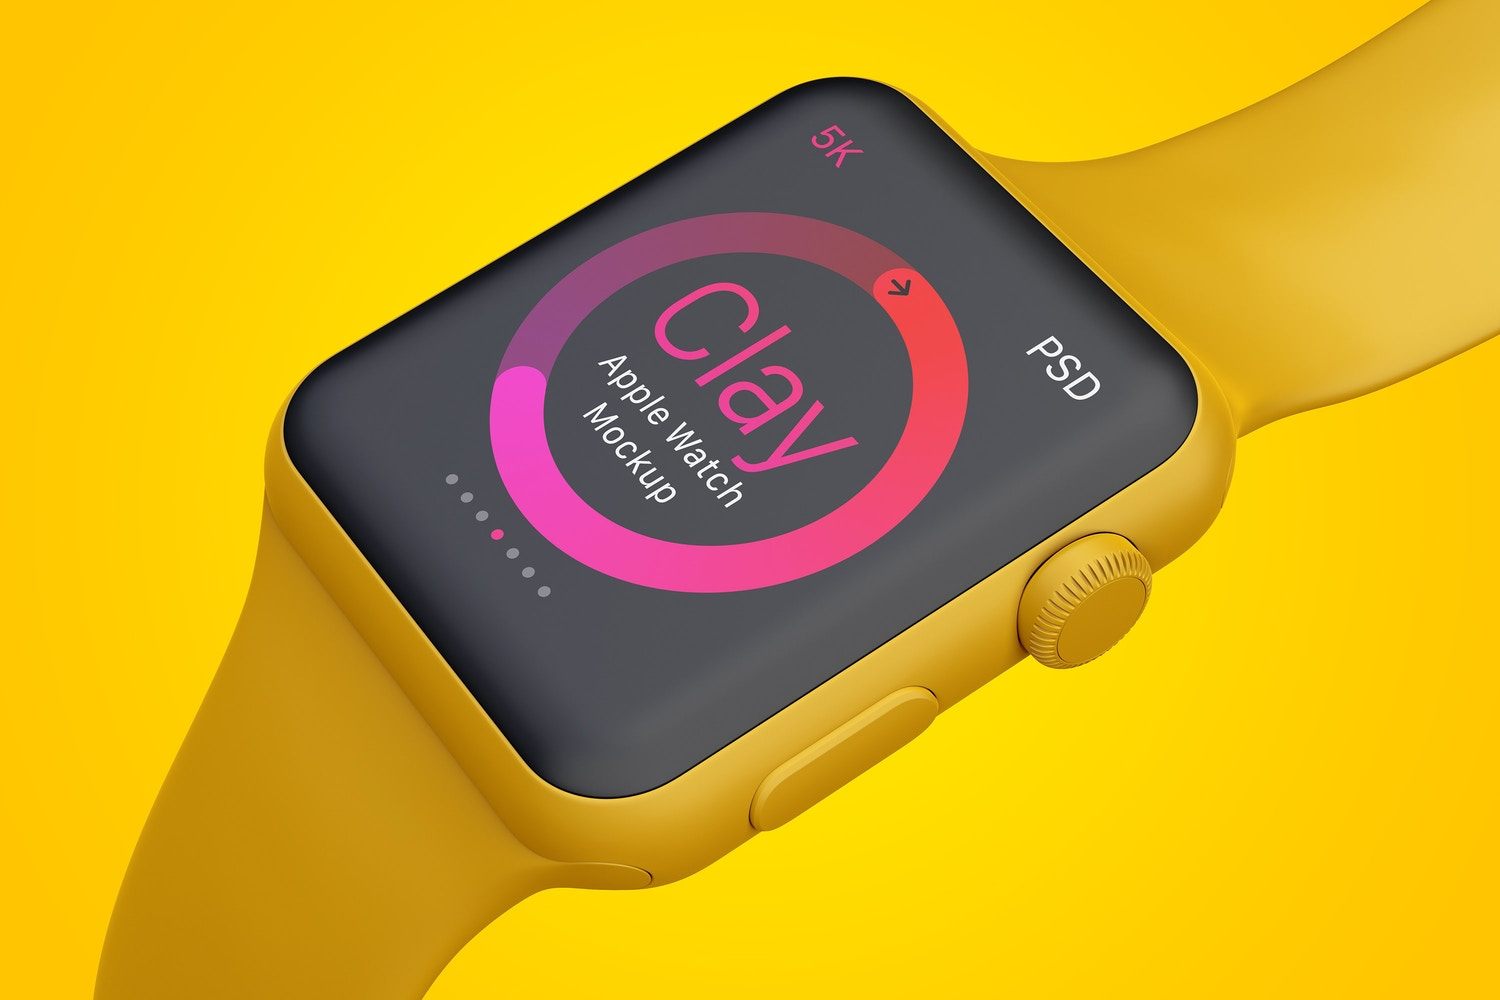 Design spectacular presentations by changing the background color, yellow, black or any color that highlights the design.